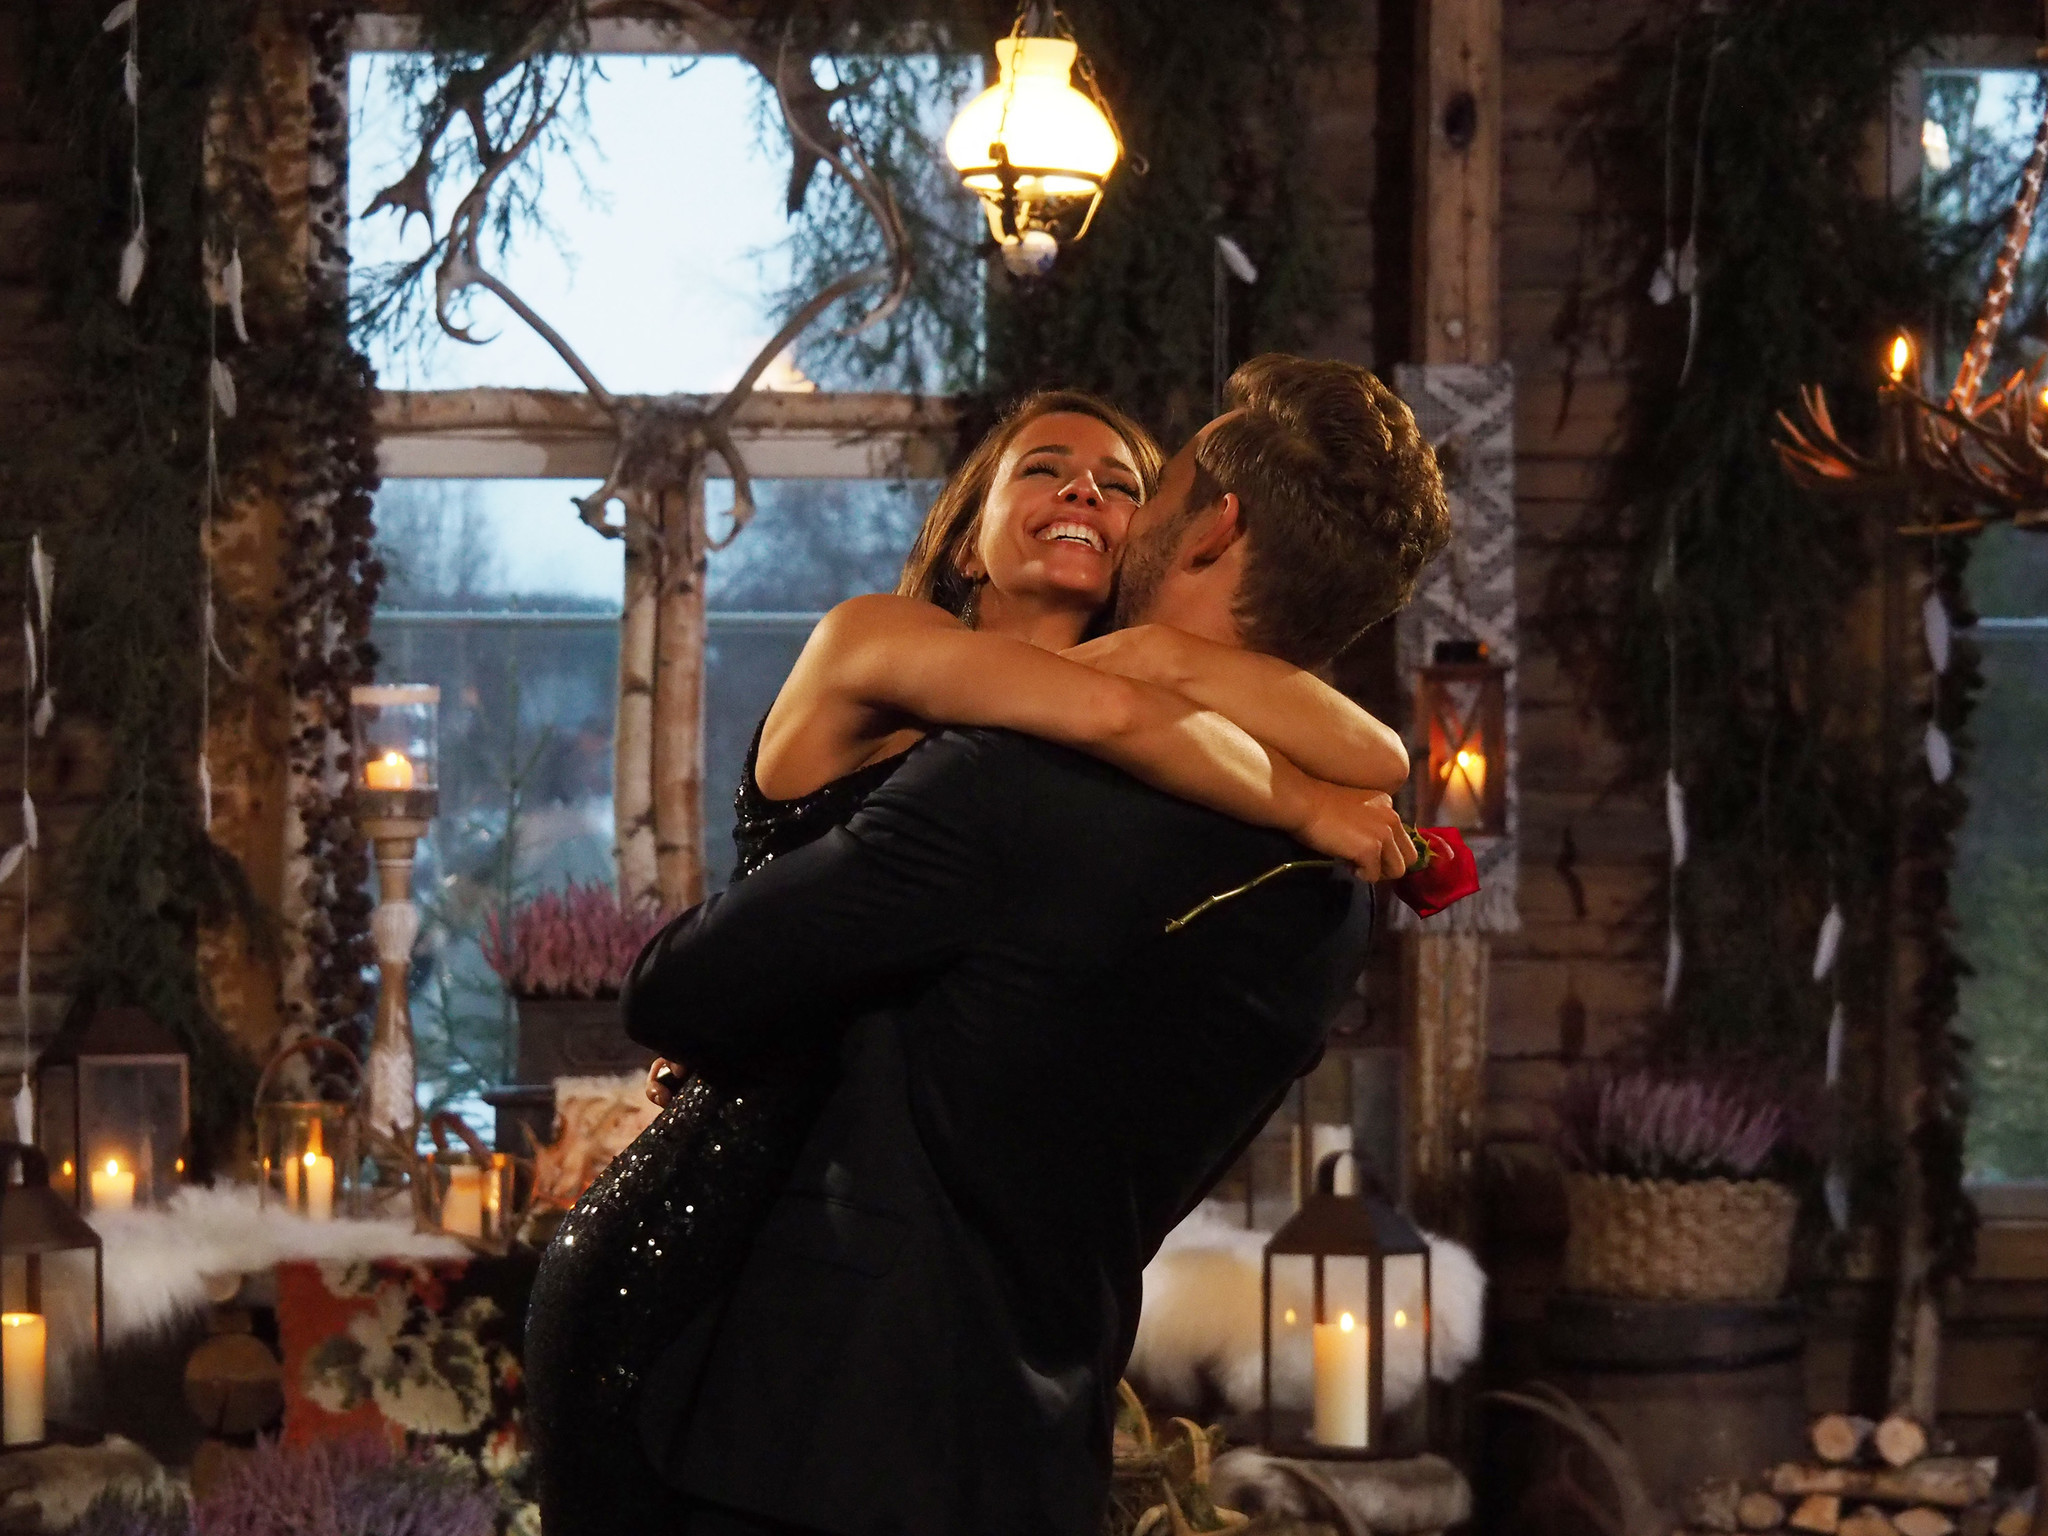 The Bachelor' Episode 9 recap: Ding dong the witch is dead